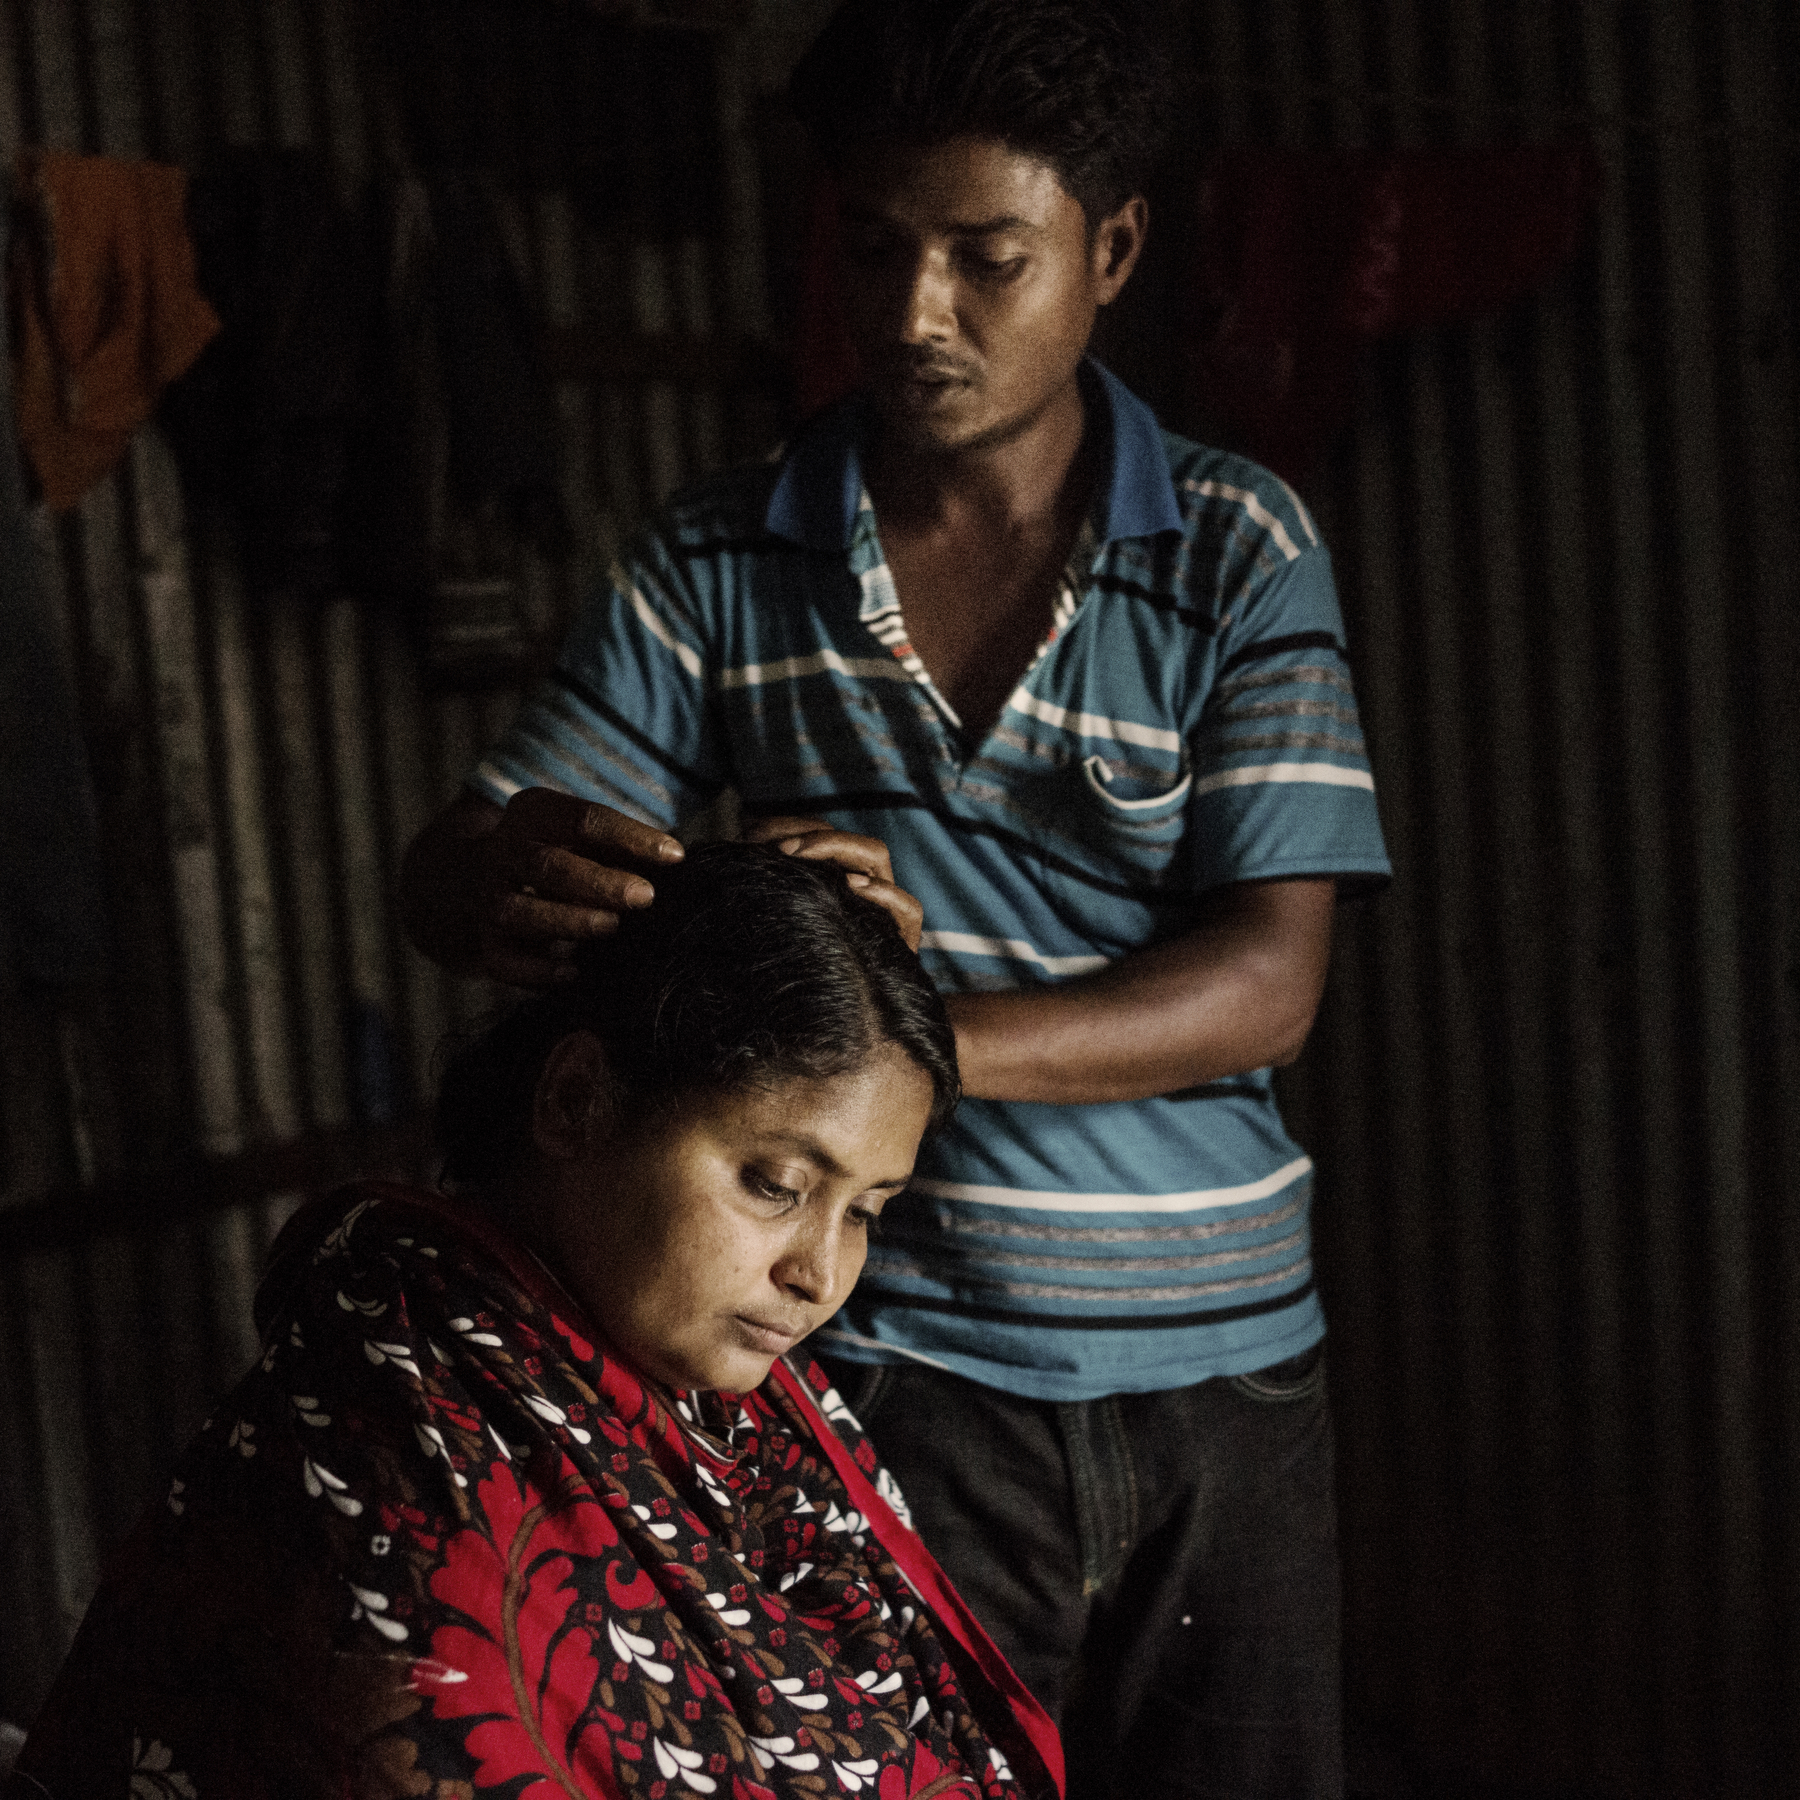 Mominul Islam, husband of Rana Plaza survivor Sharvanu, gently brushes her hair, as he tells the story of finding his wife amongst the chaos.